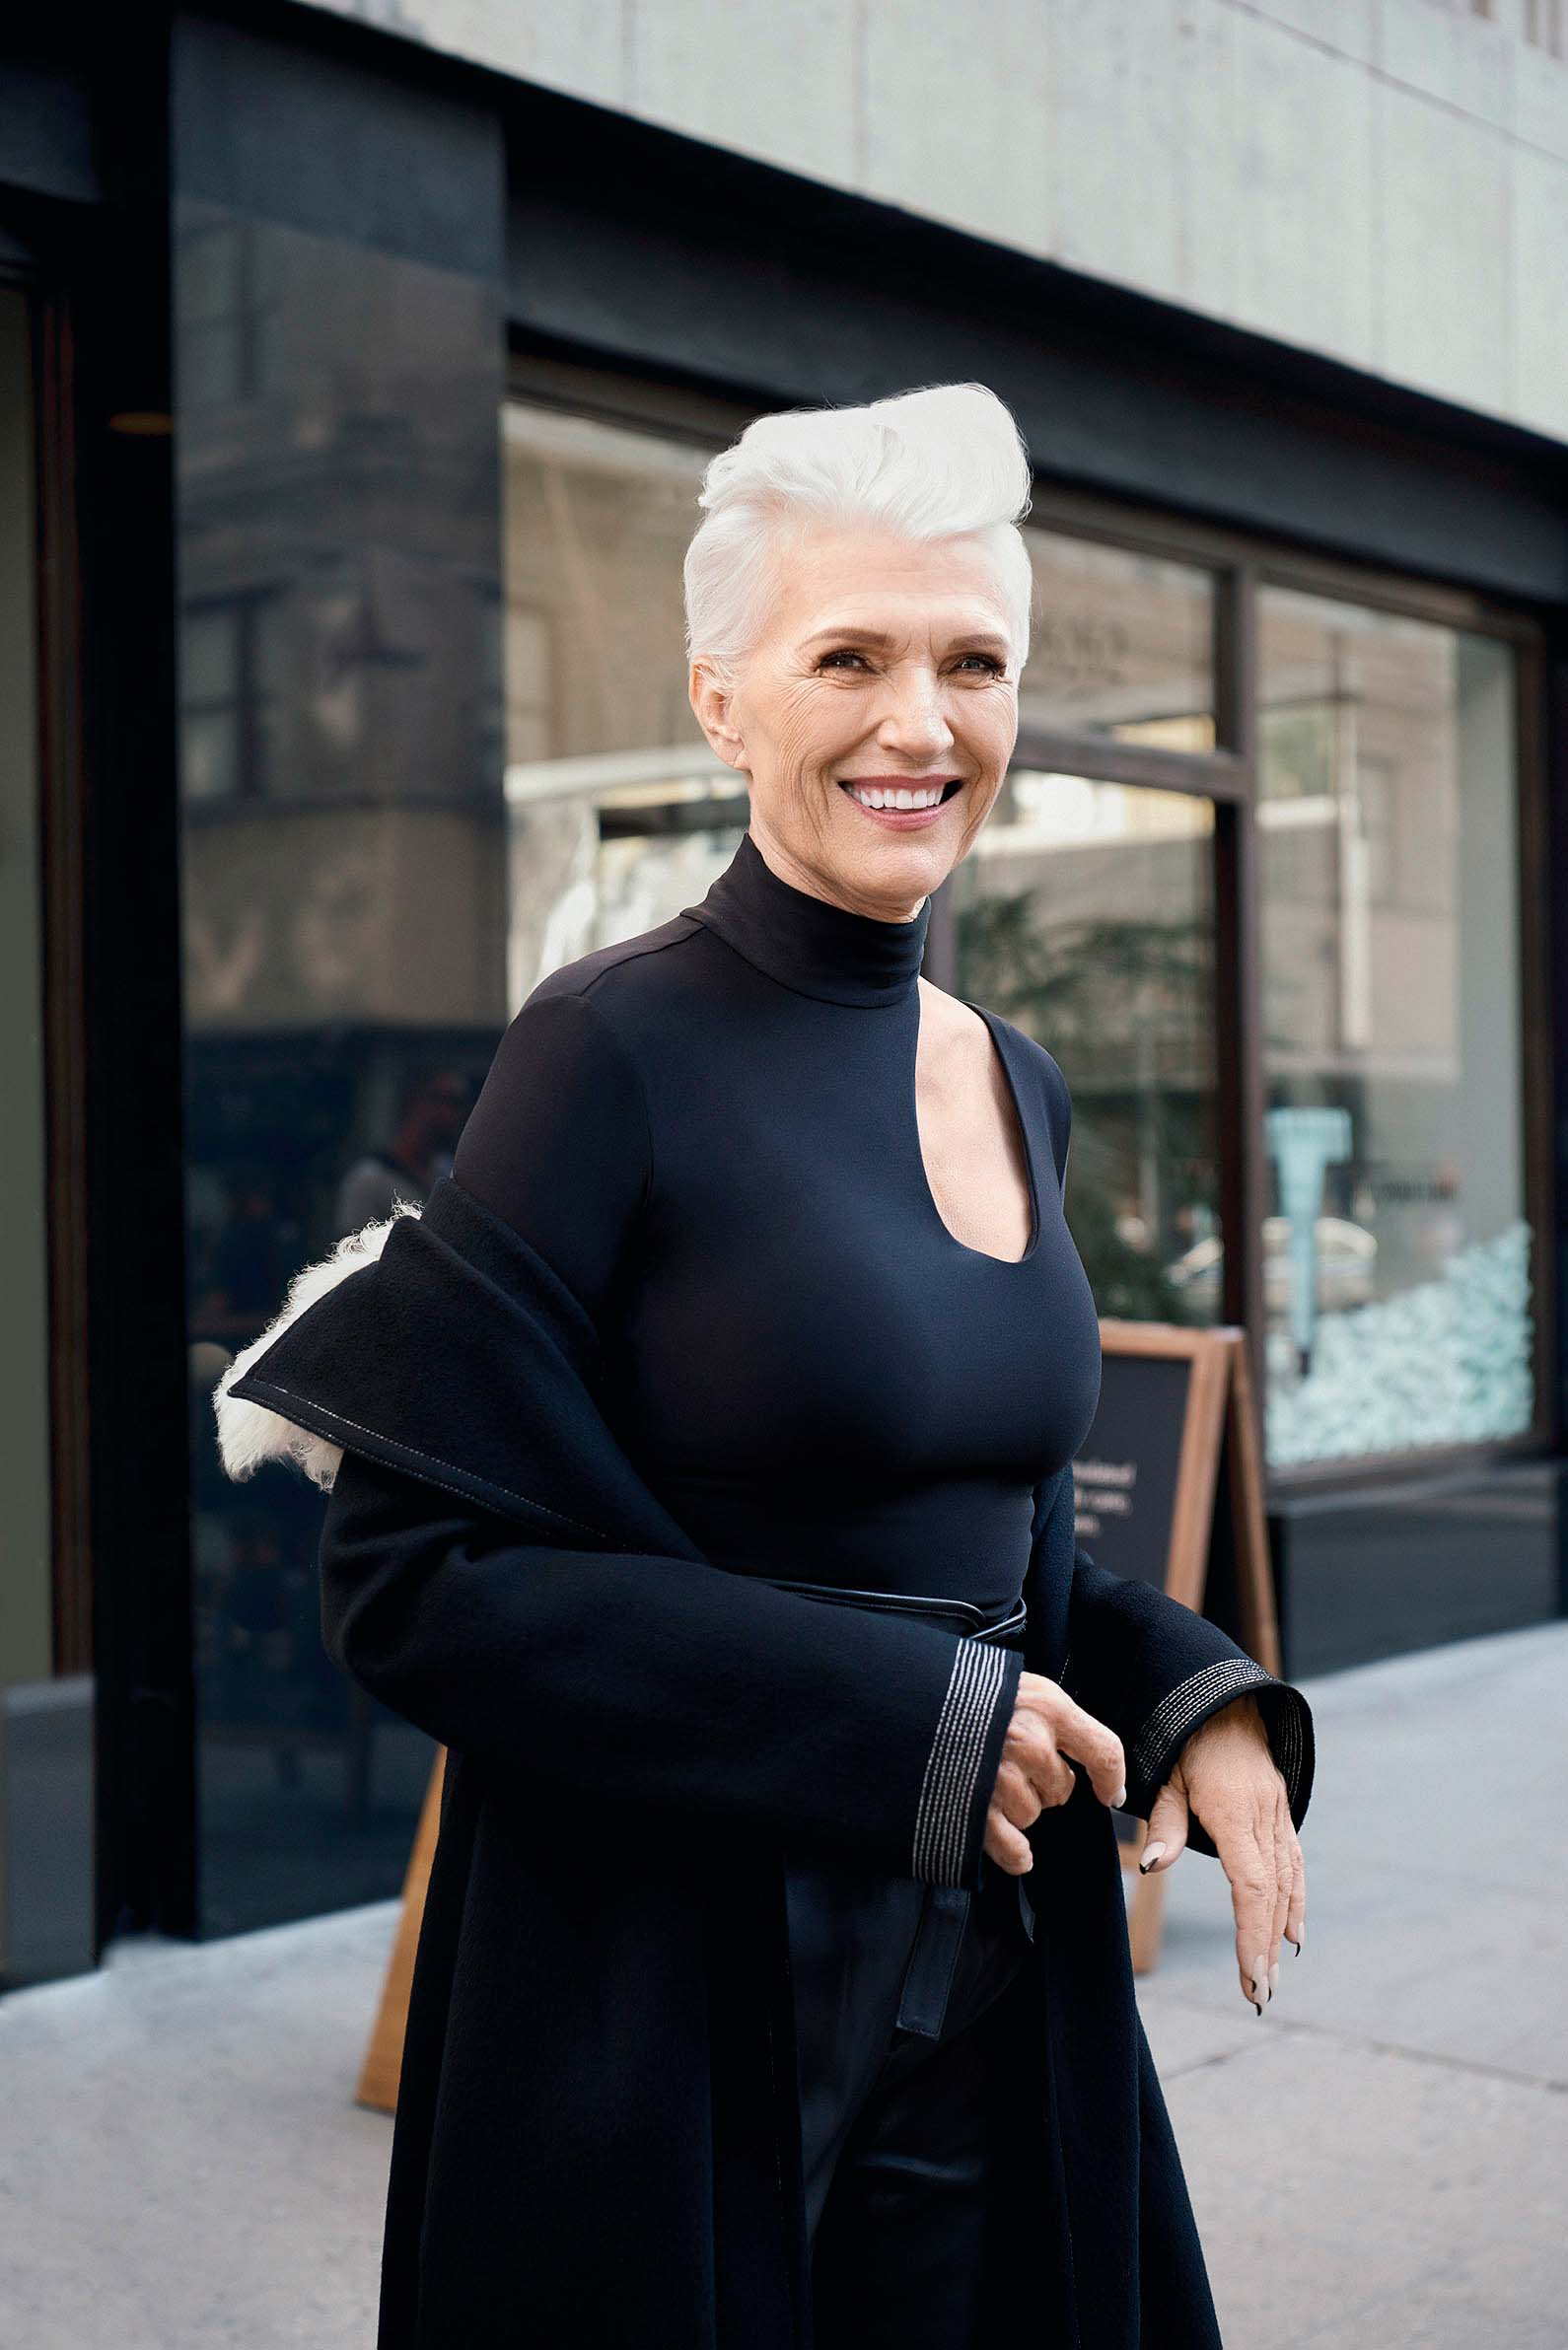 Elon Musk's mother is the new face of CoverGirl. The elegant 69-year-old sports an all-black ensemble with an edgy cropped hairdo for the beauty campaign.